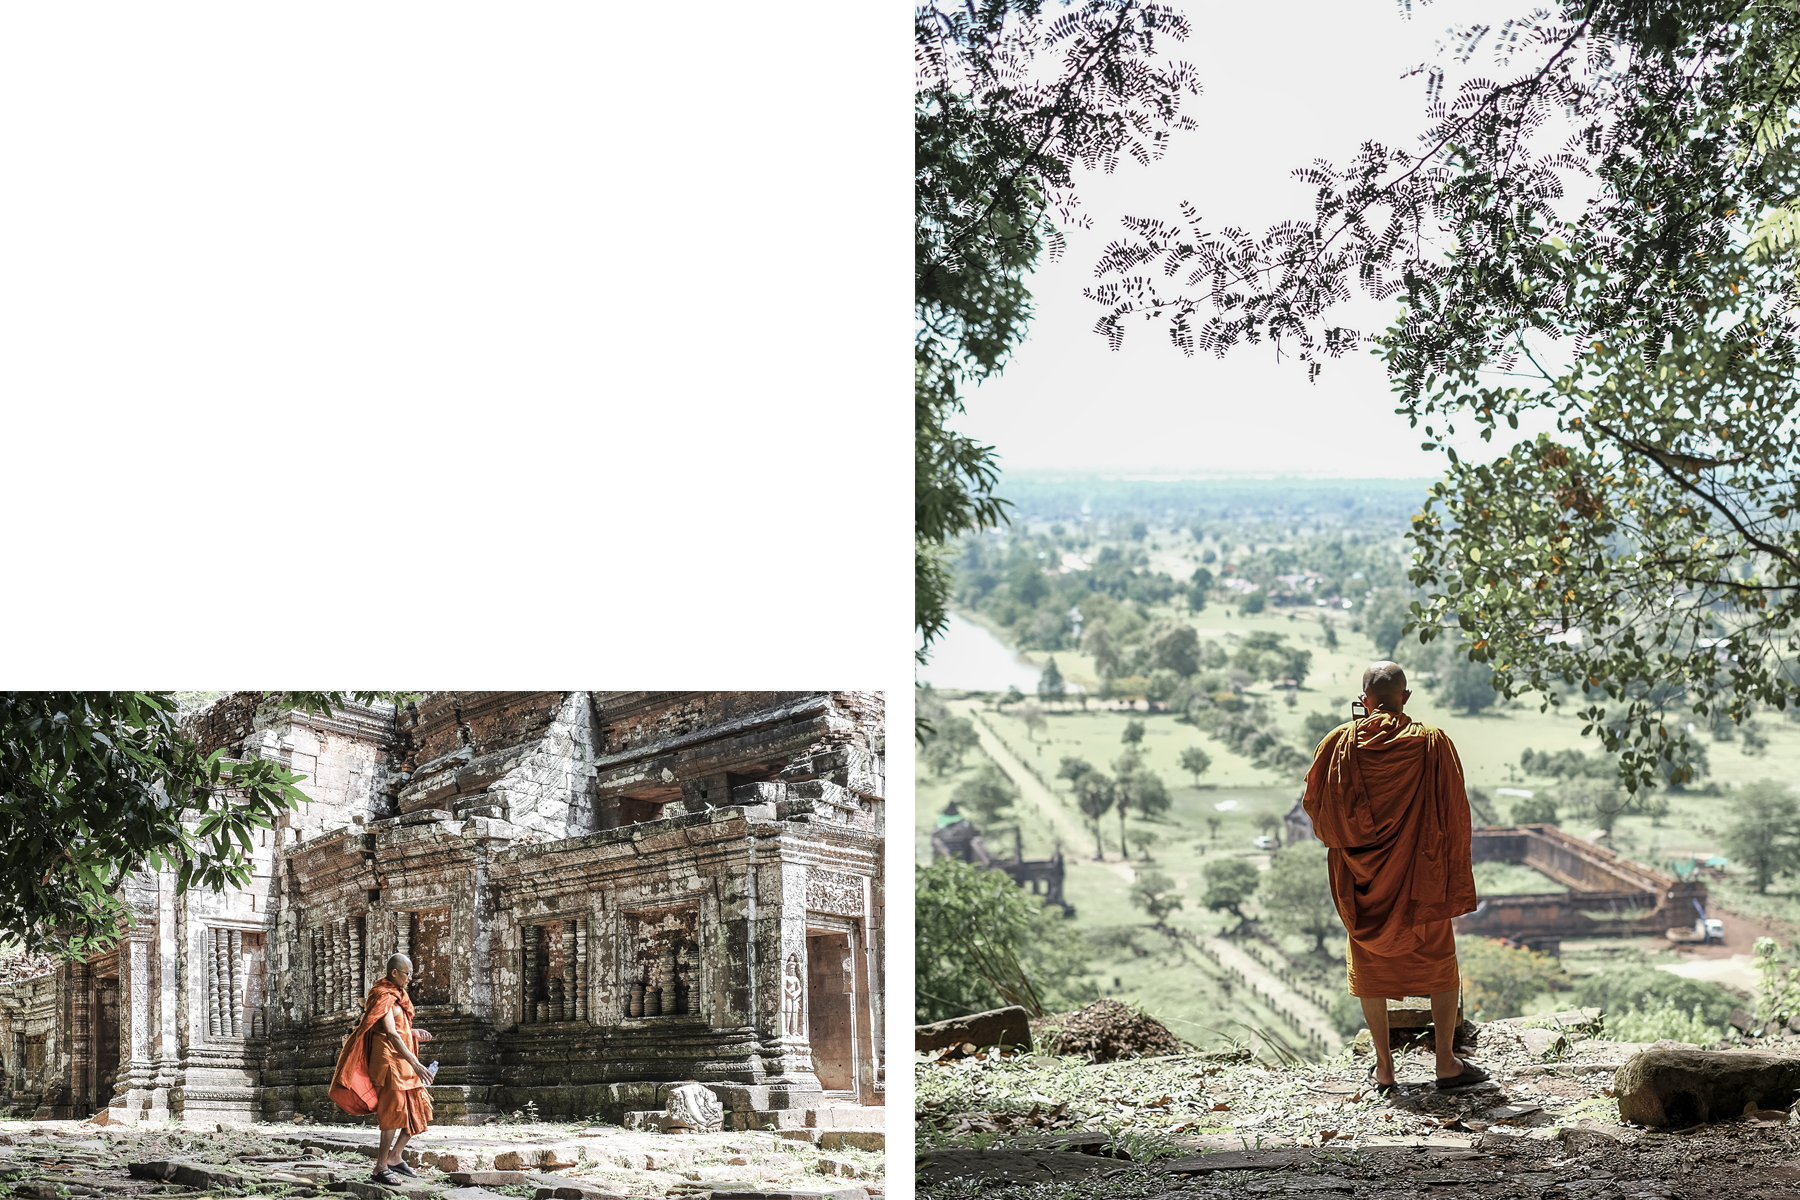 Monk in the temple